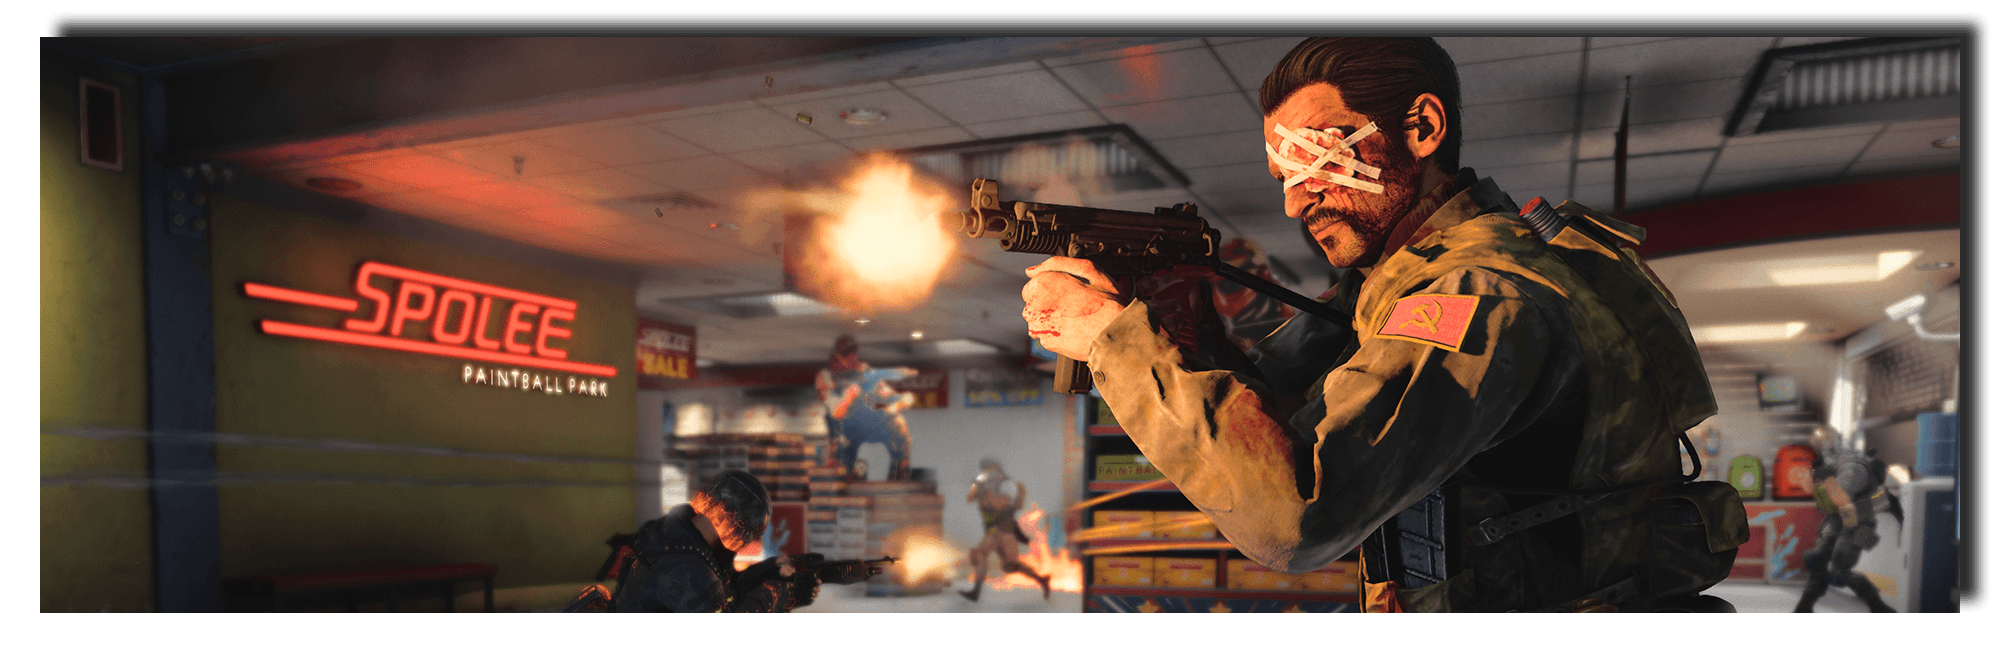 Banner image of the new OTs 9 submachine gun in action.